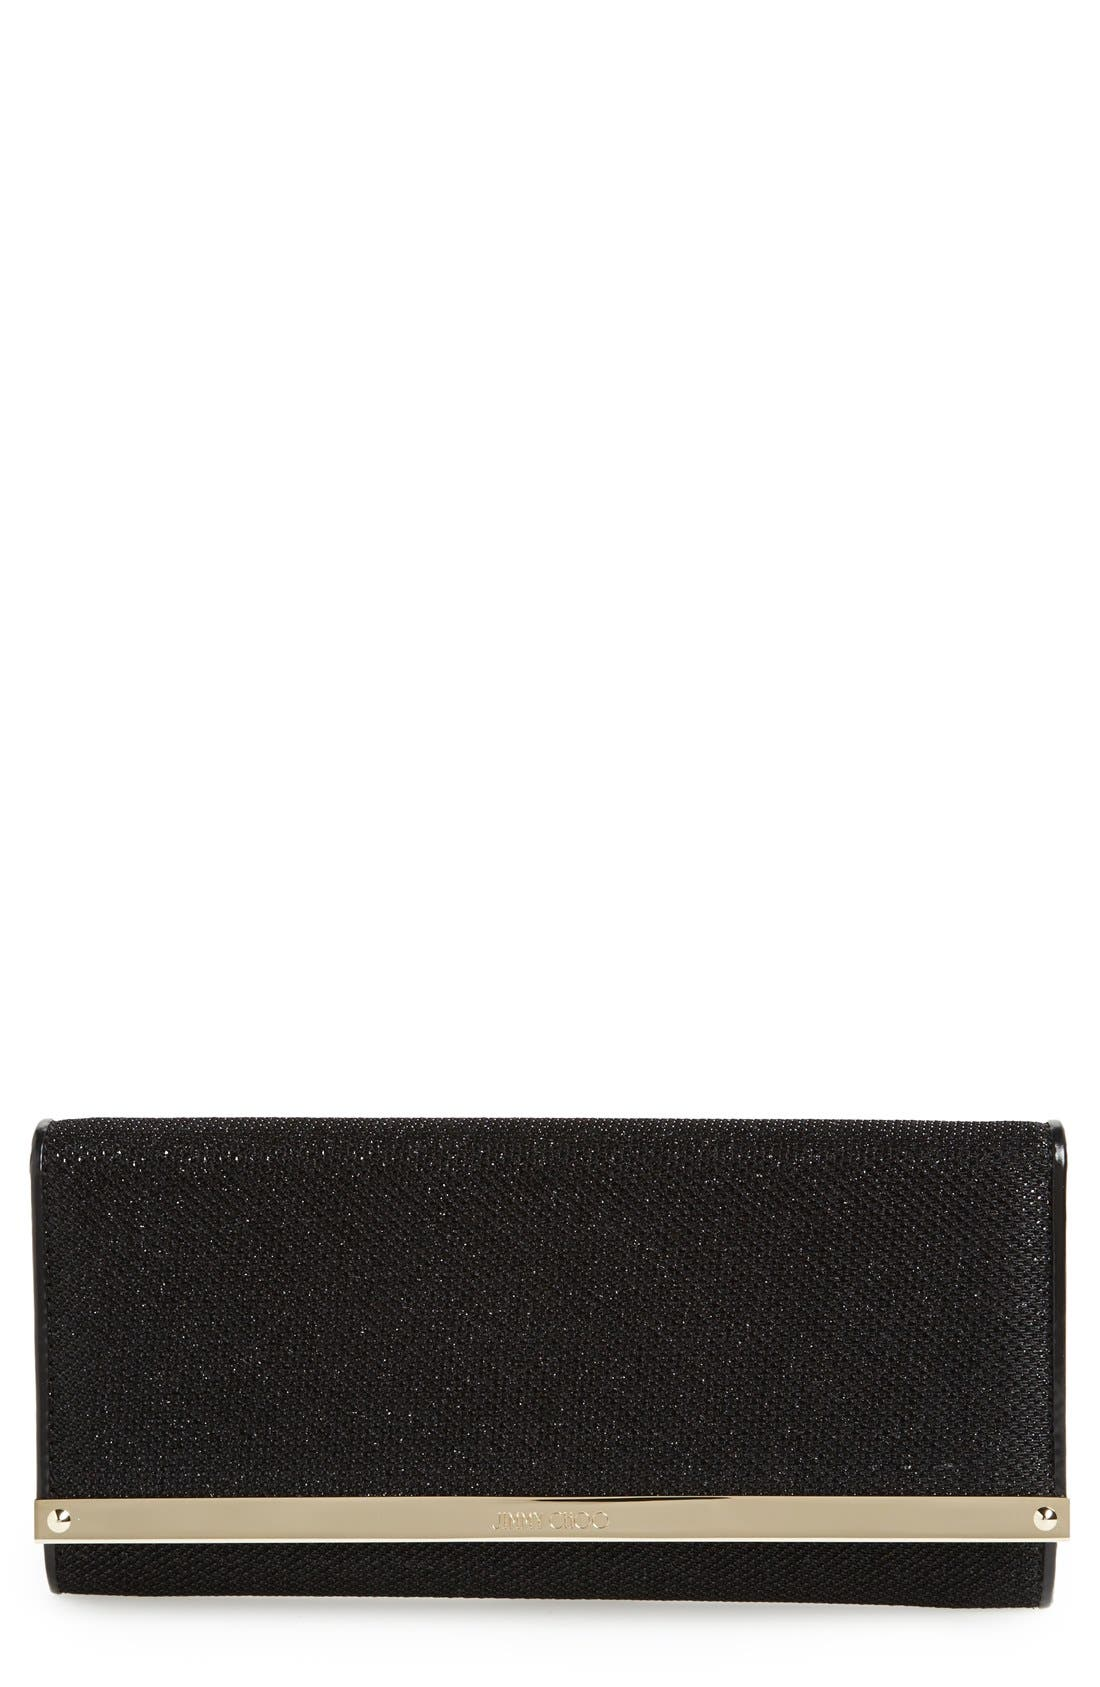 Main Image - Jimmy Choo 'Milla' Glitter Lamé Wallet on a Chain